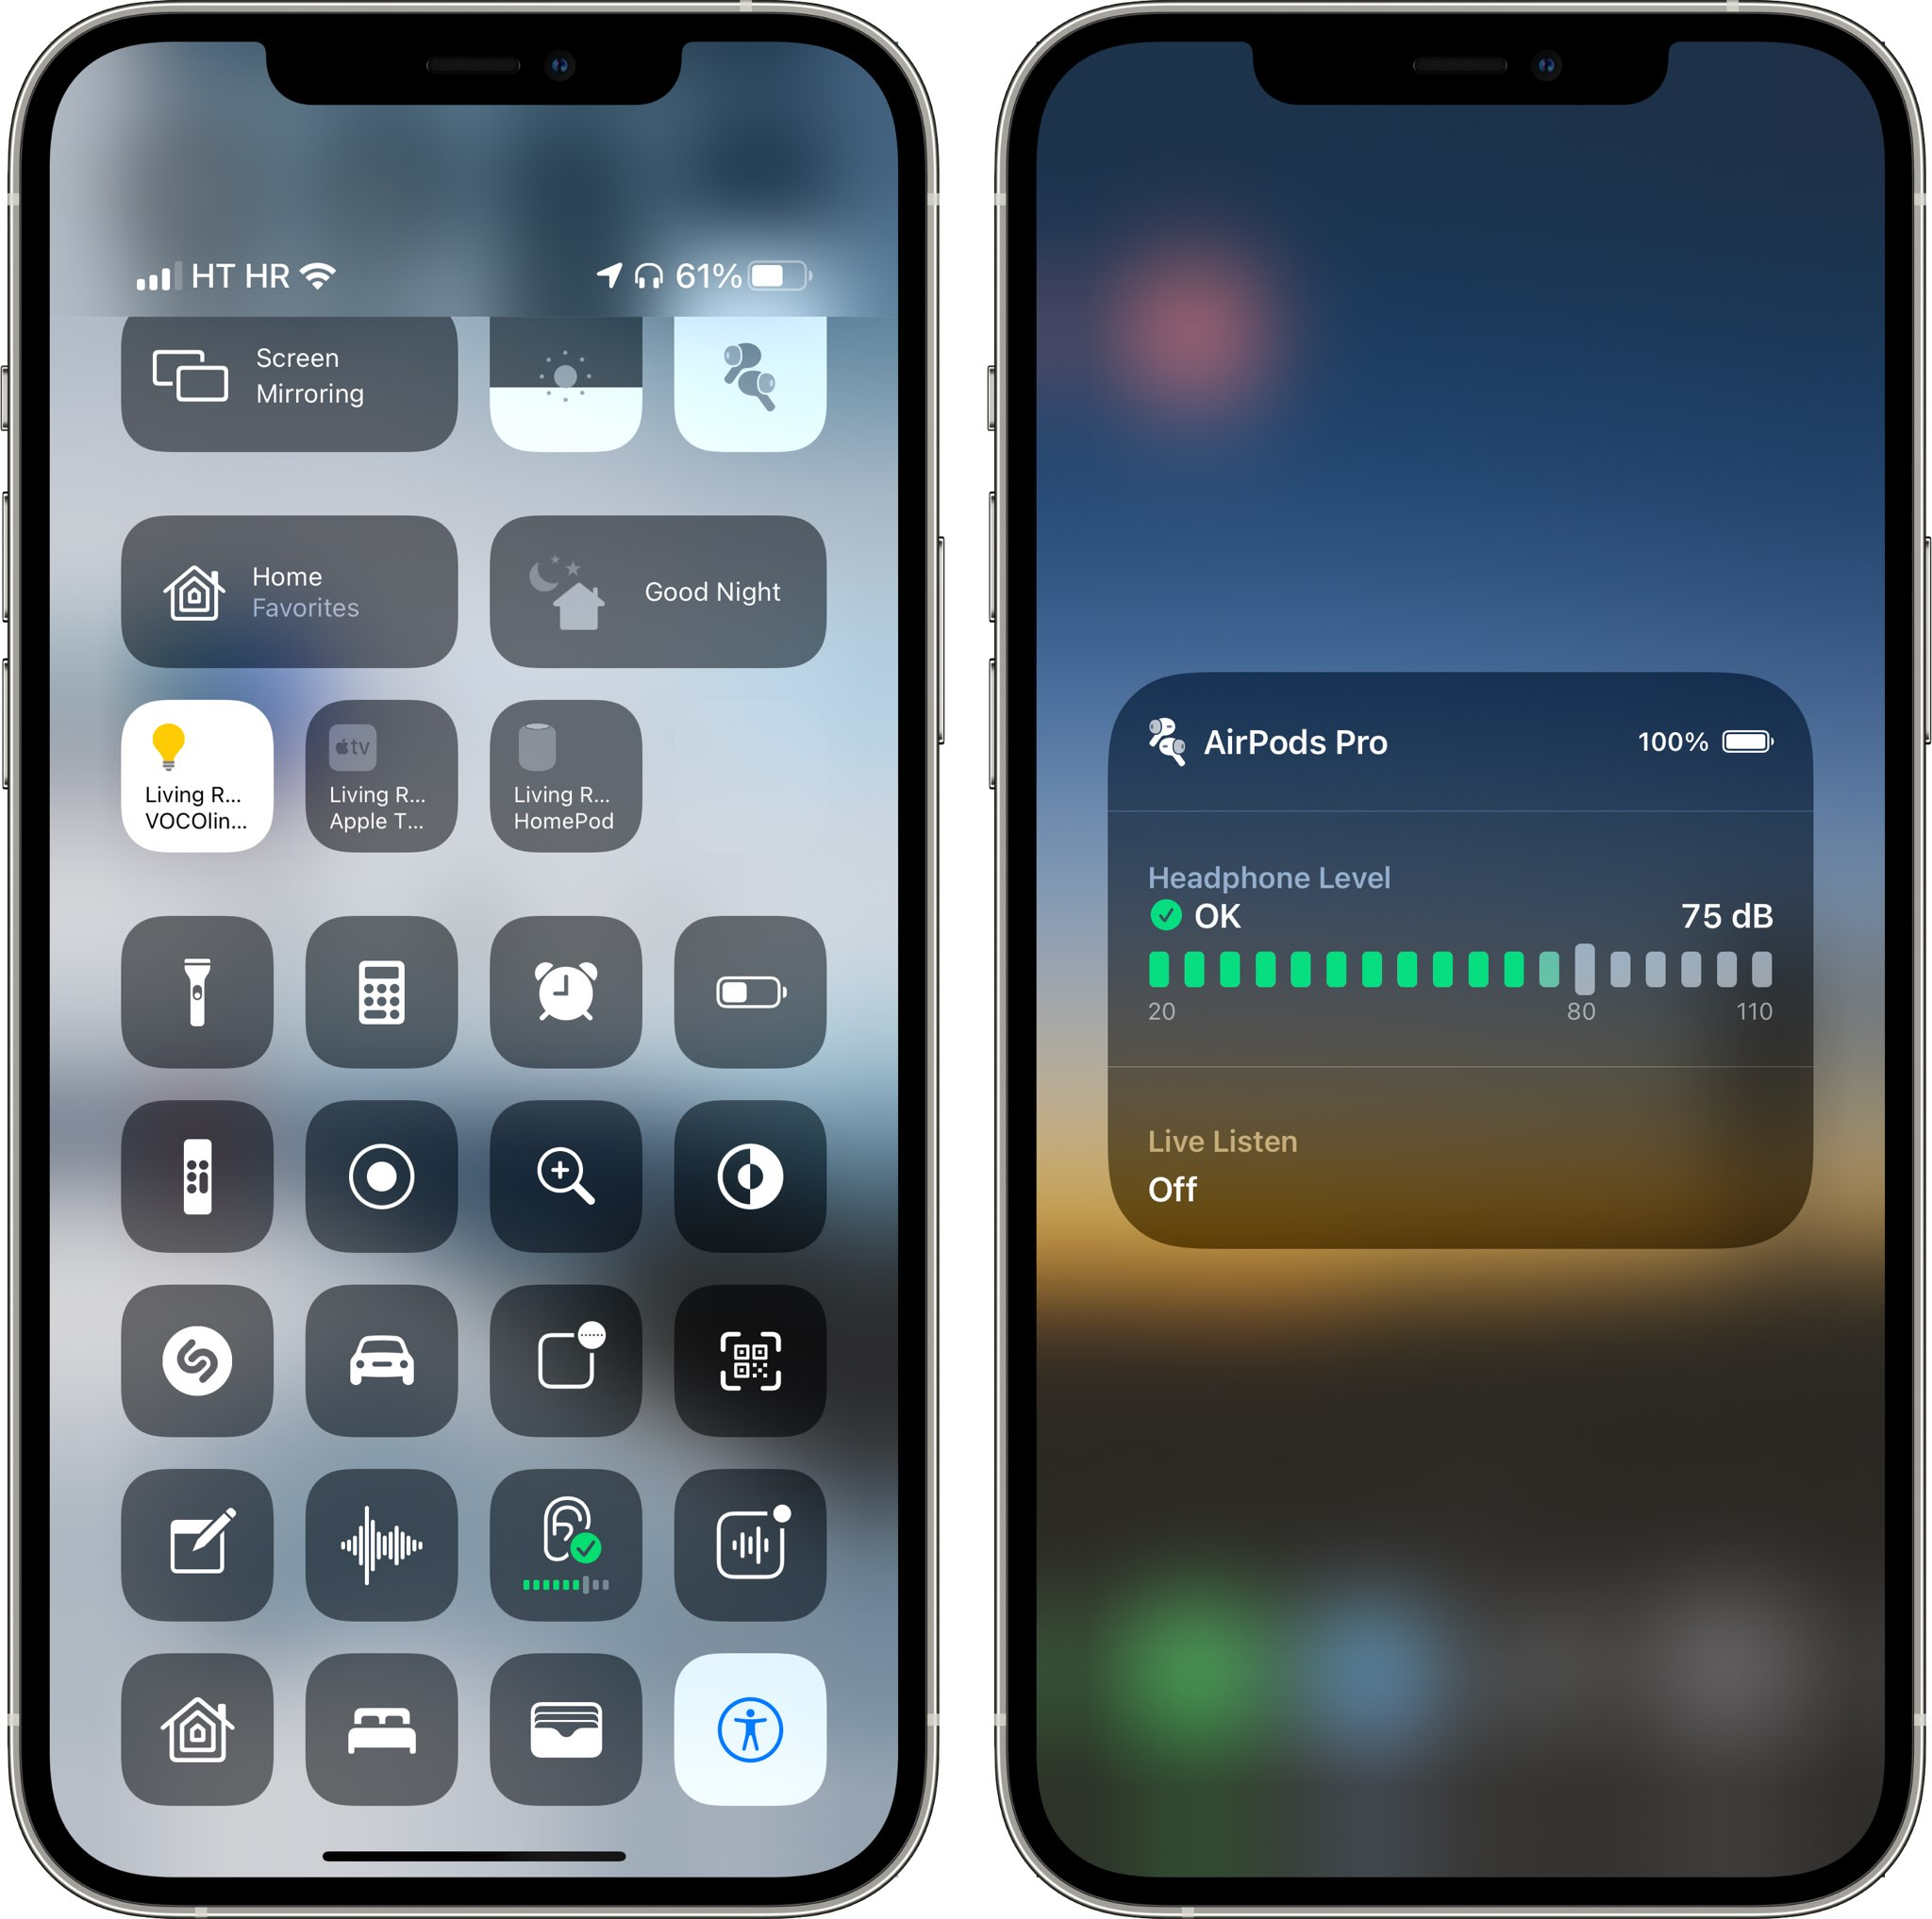 The Control Center on iOS 14 with the Hearing option shown in action on iPhone